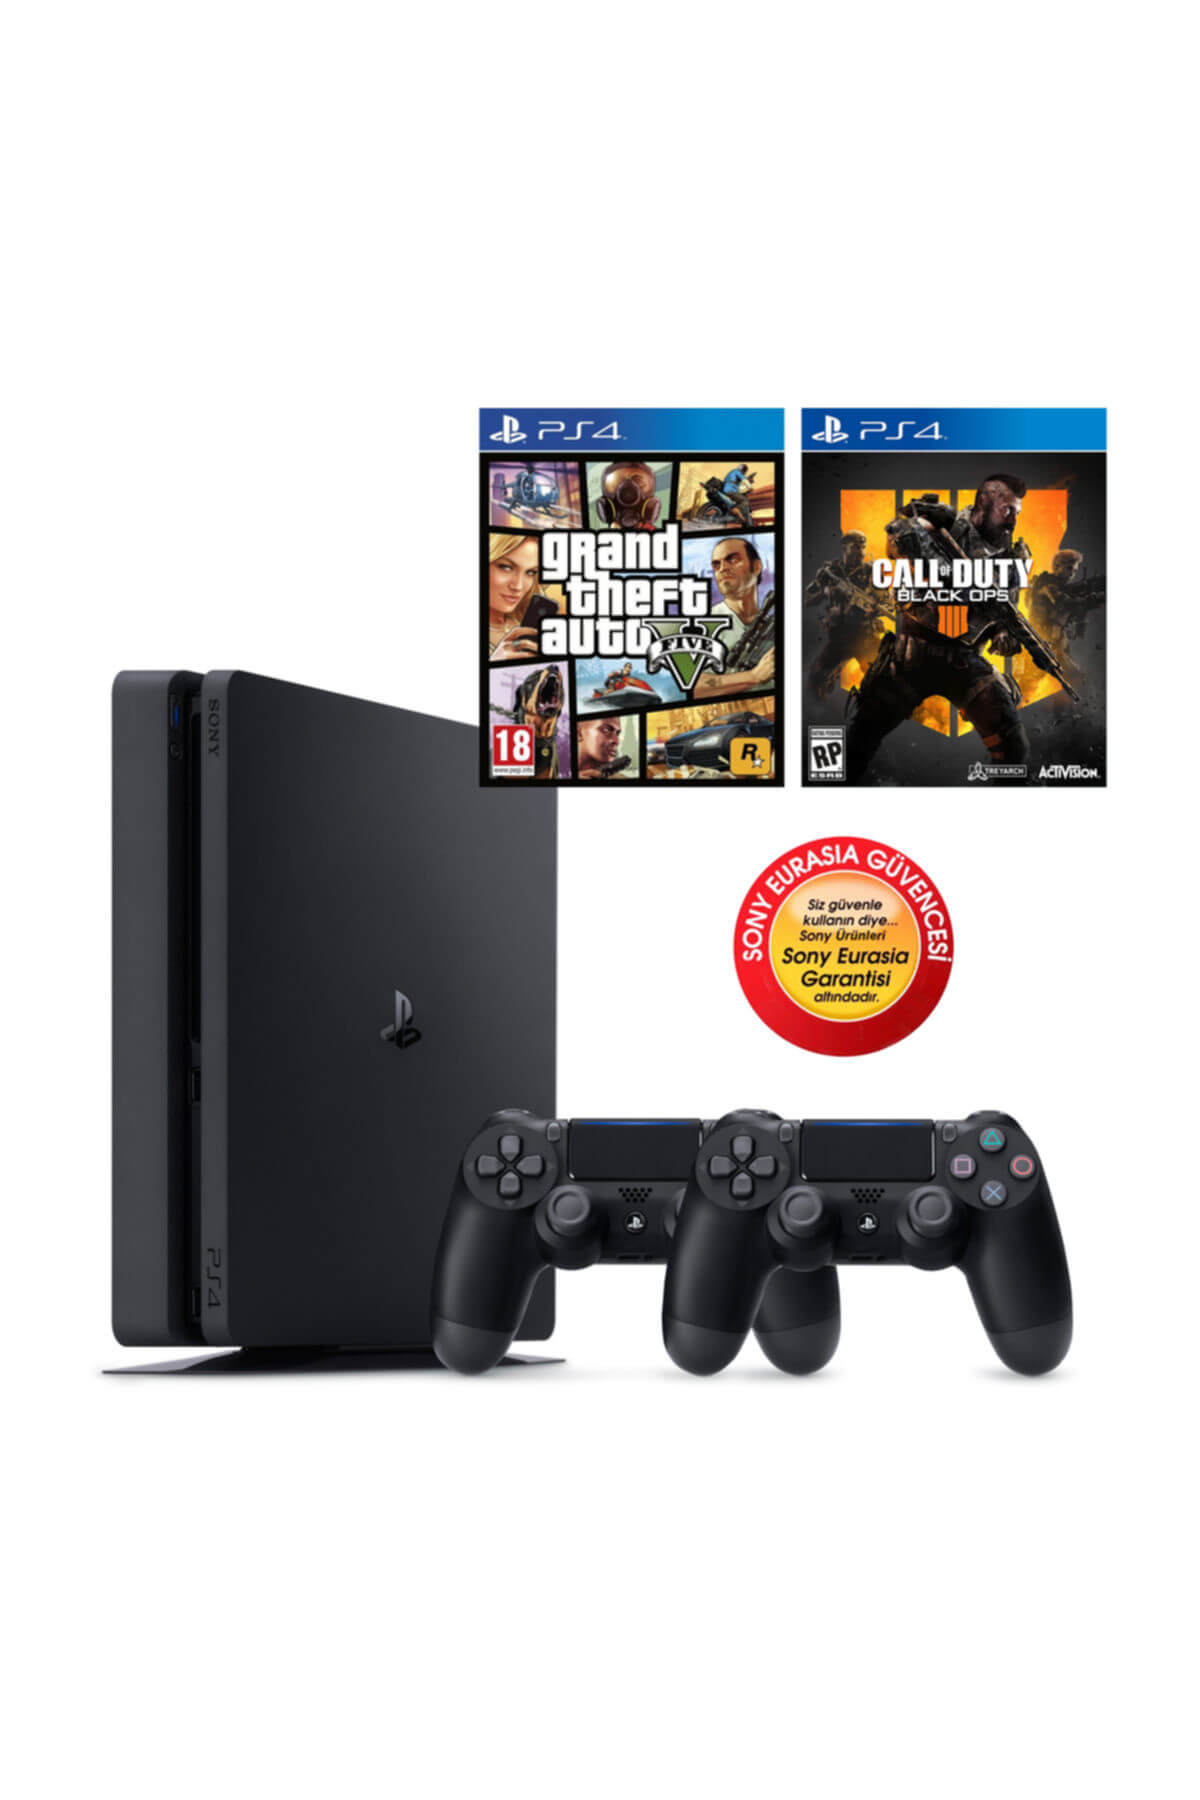 Sony Ps4 Slim 500gb Oyun Konsolu Eurasia Garantili + Ps4 Gta 5 Cod Black Ops 4 2.